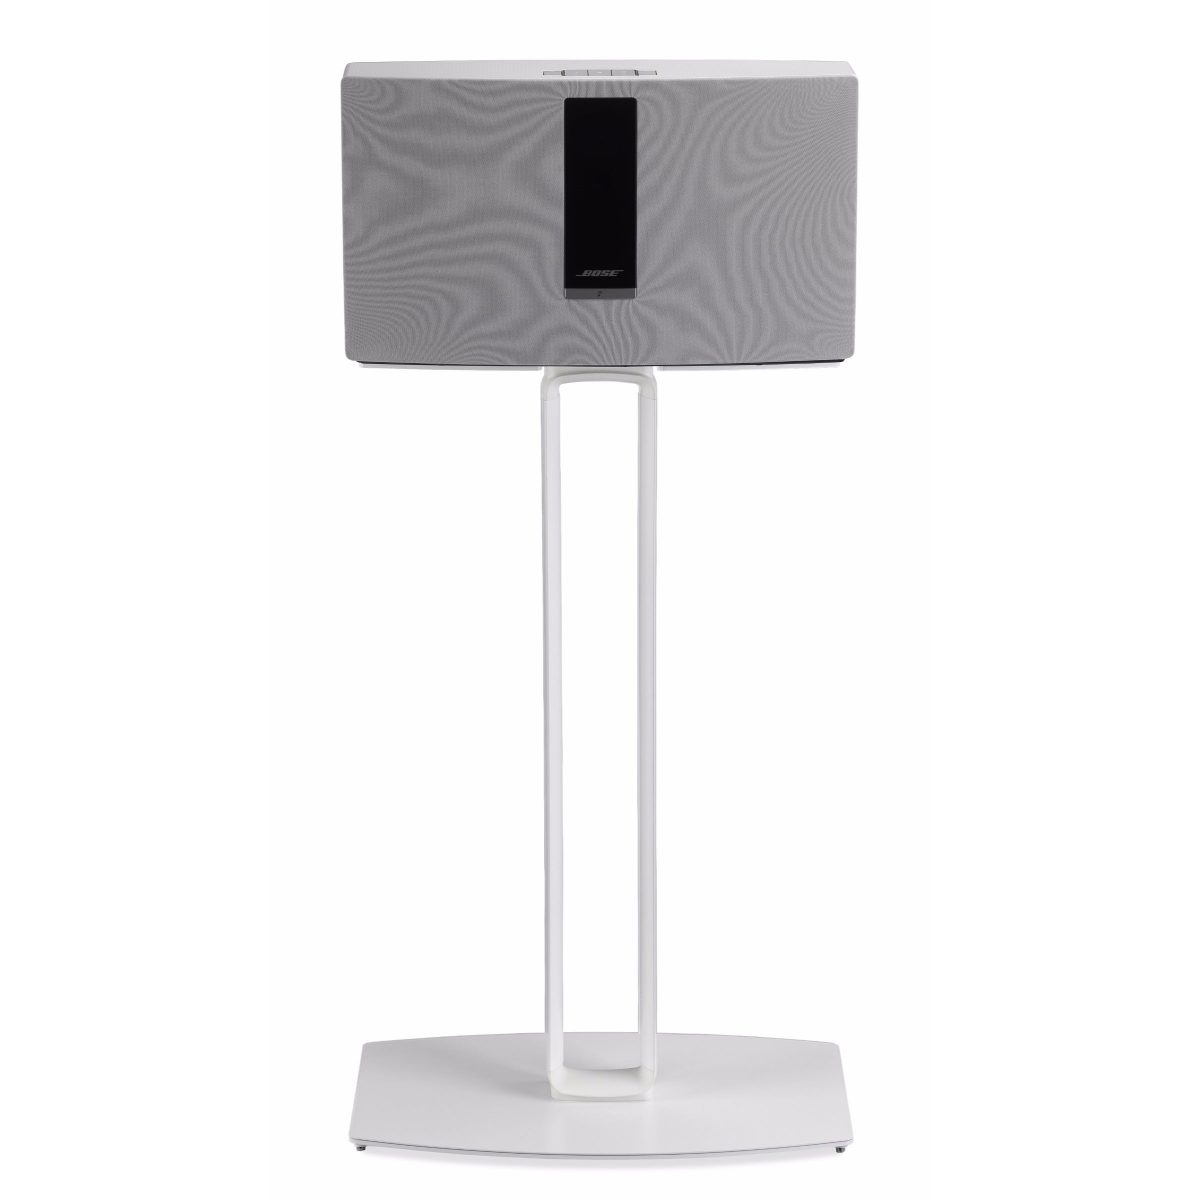 Bose SoundTouch 30 Standaard wit 8